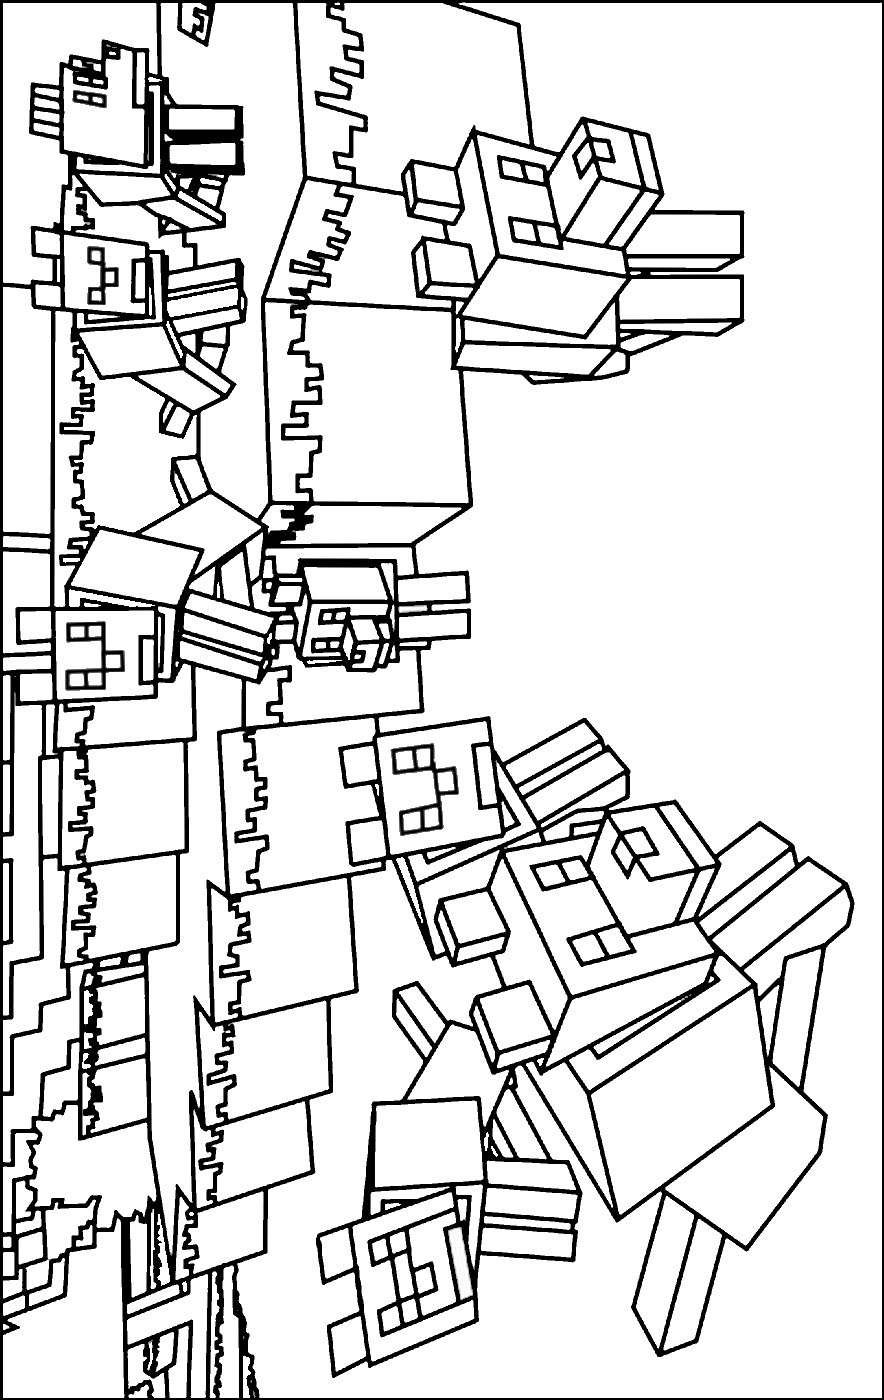 mine craft coloring pages - lego minecraft free coloring pages